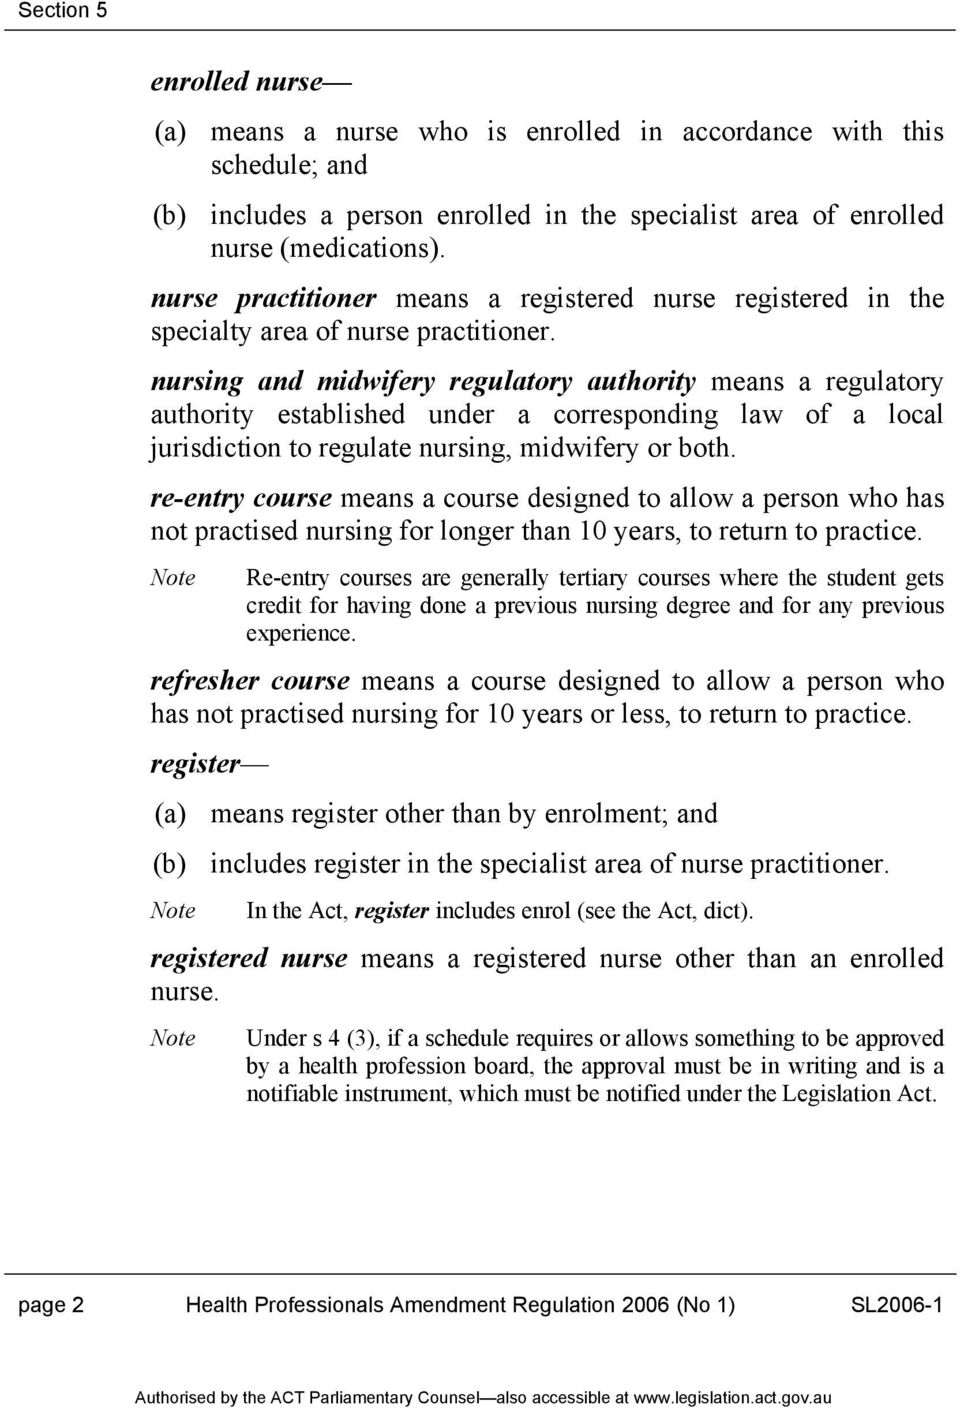 nursing and midwifery regulatory authority means a regulatory authority established under a corresponding law of a local jurisdiction to regulate nursing, midwifery or both.